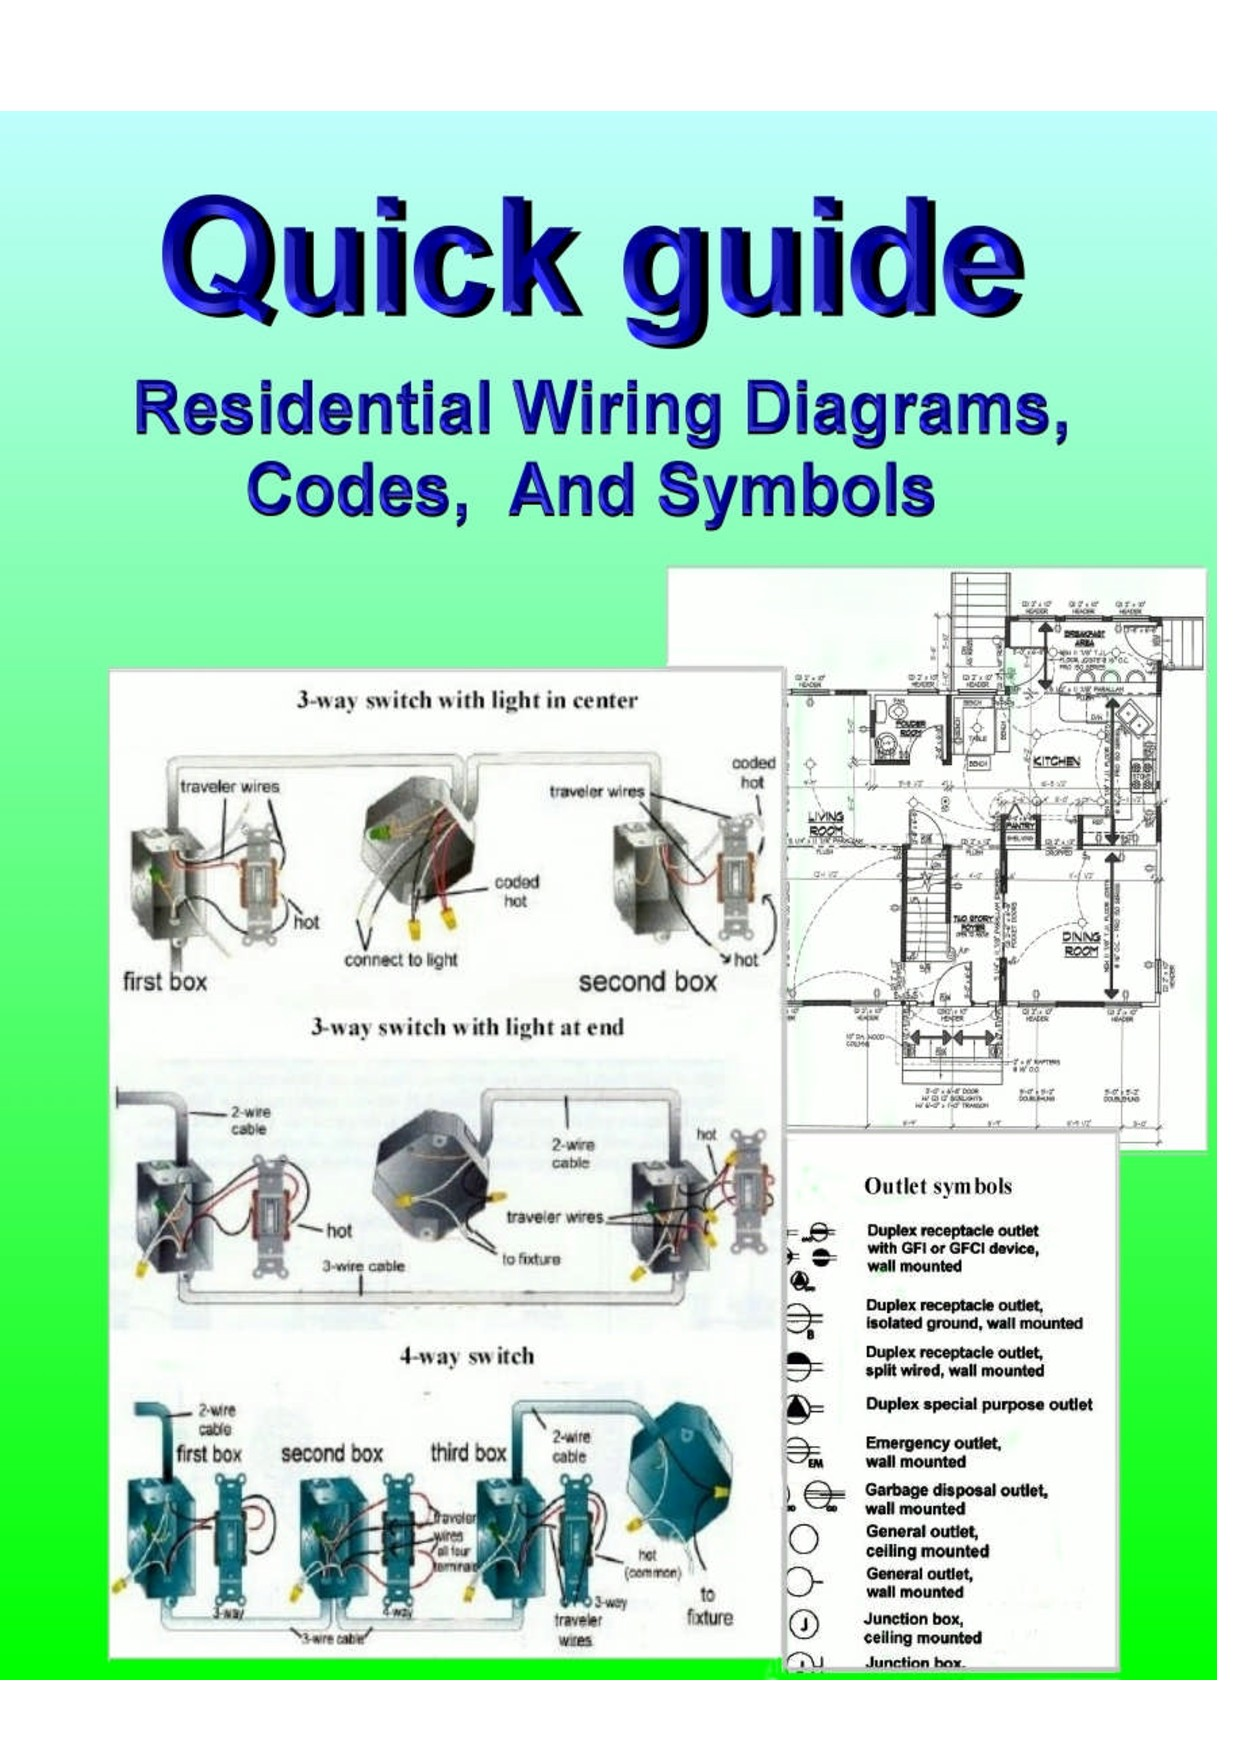 Wiring Photocell to Lighting Contactor Lighting Contactor Wiring Diagram Pdf Of Wiring Photocell to Lighting Contactor F62dca3 tork Lighting Contactor Wiring Diagram